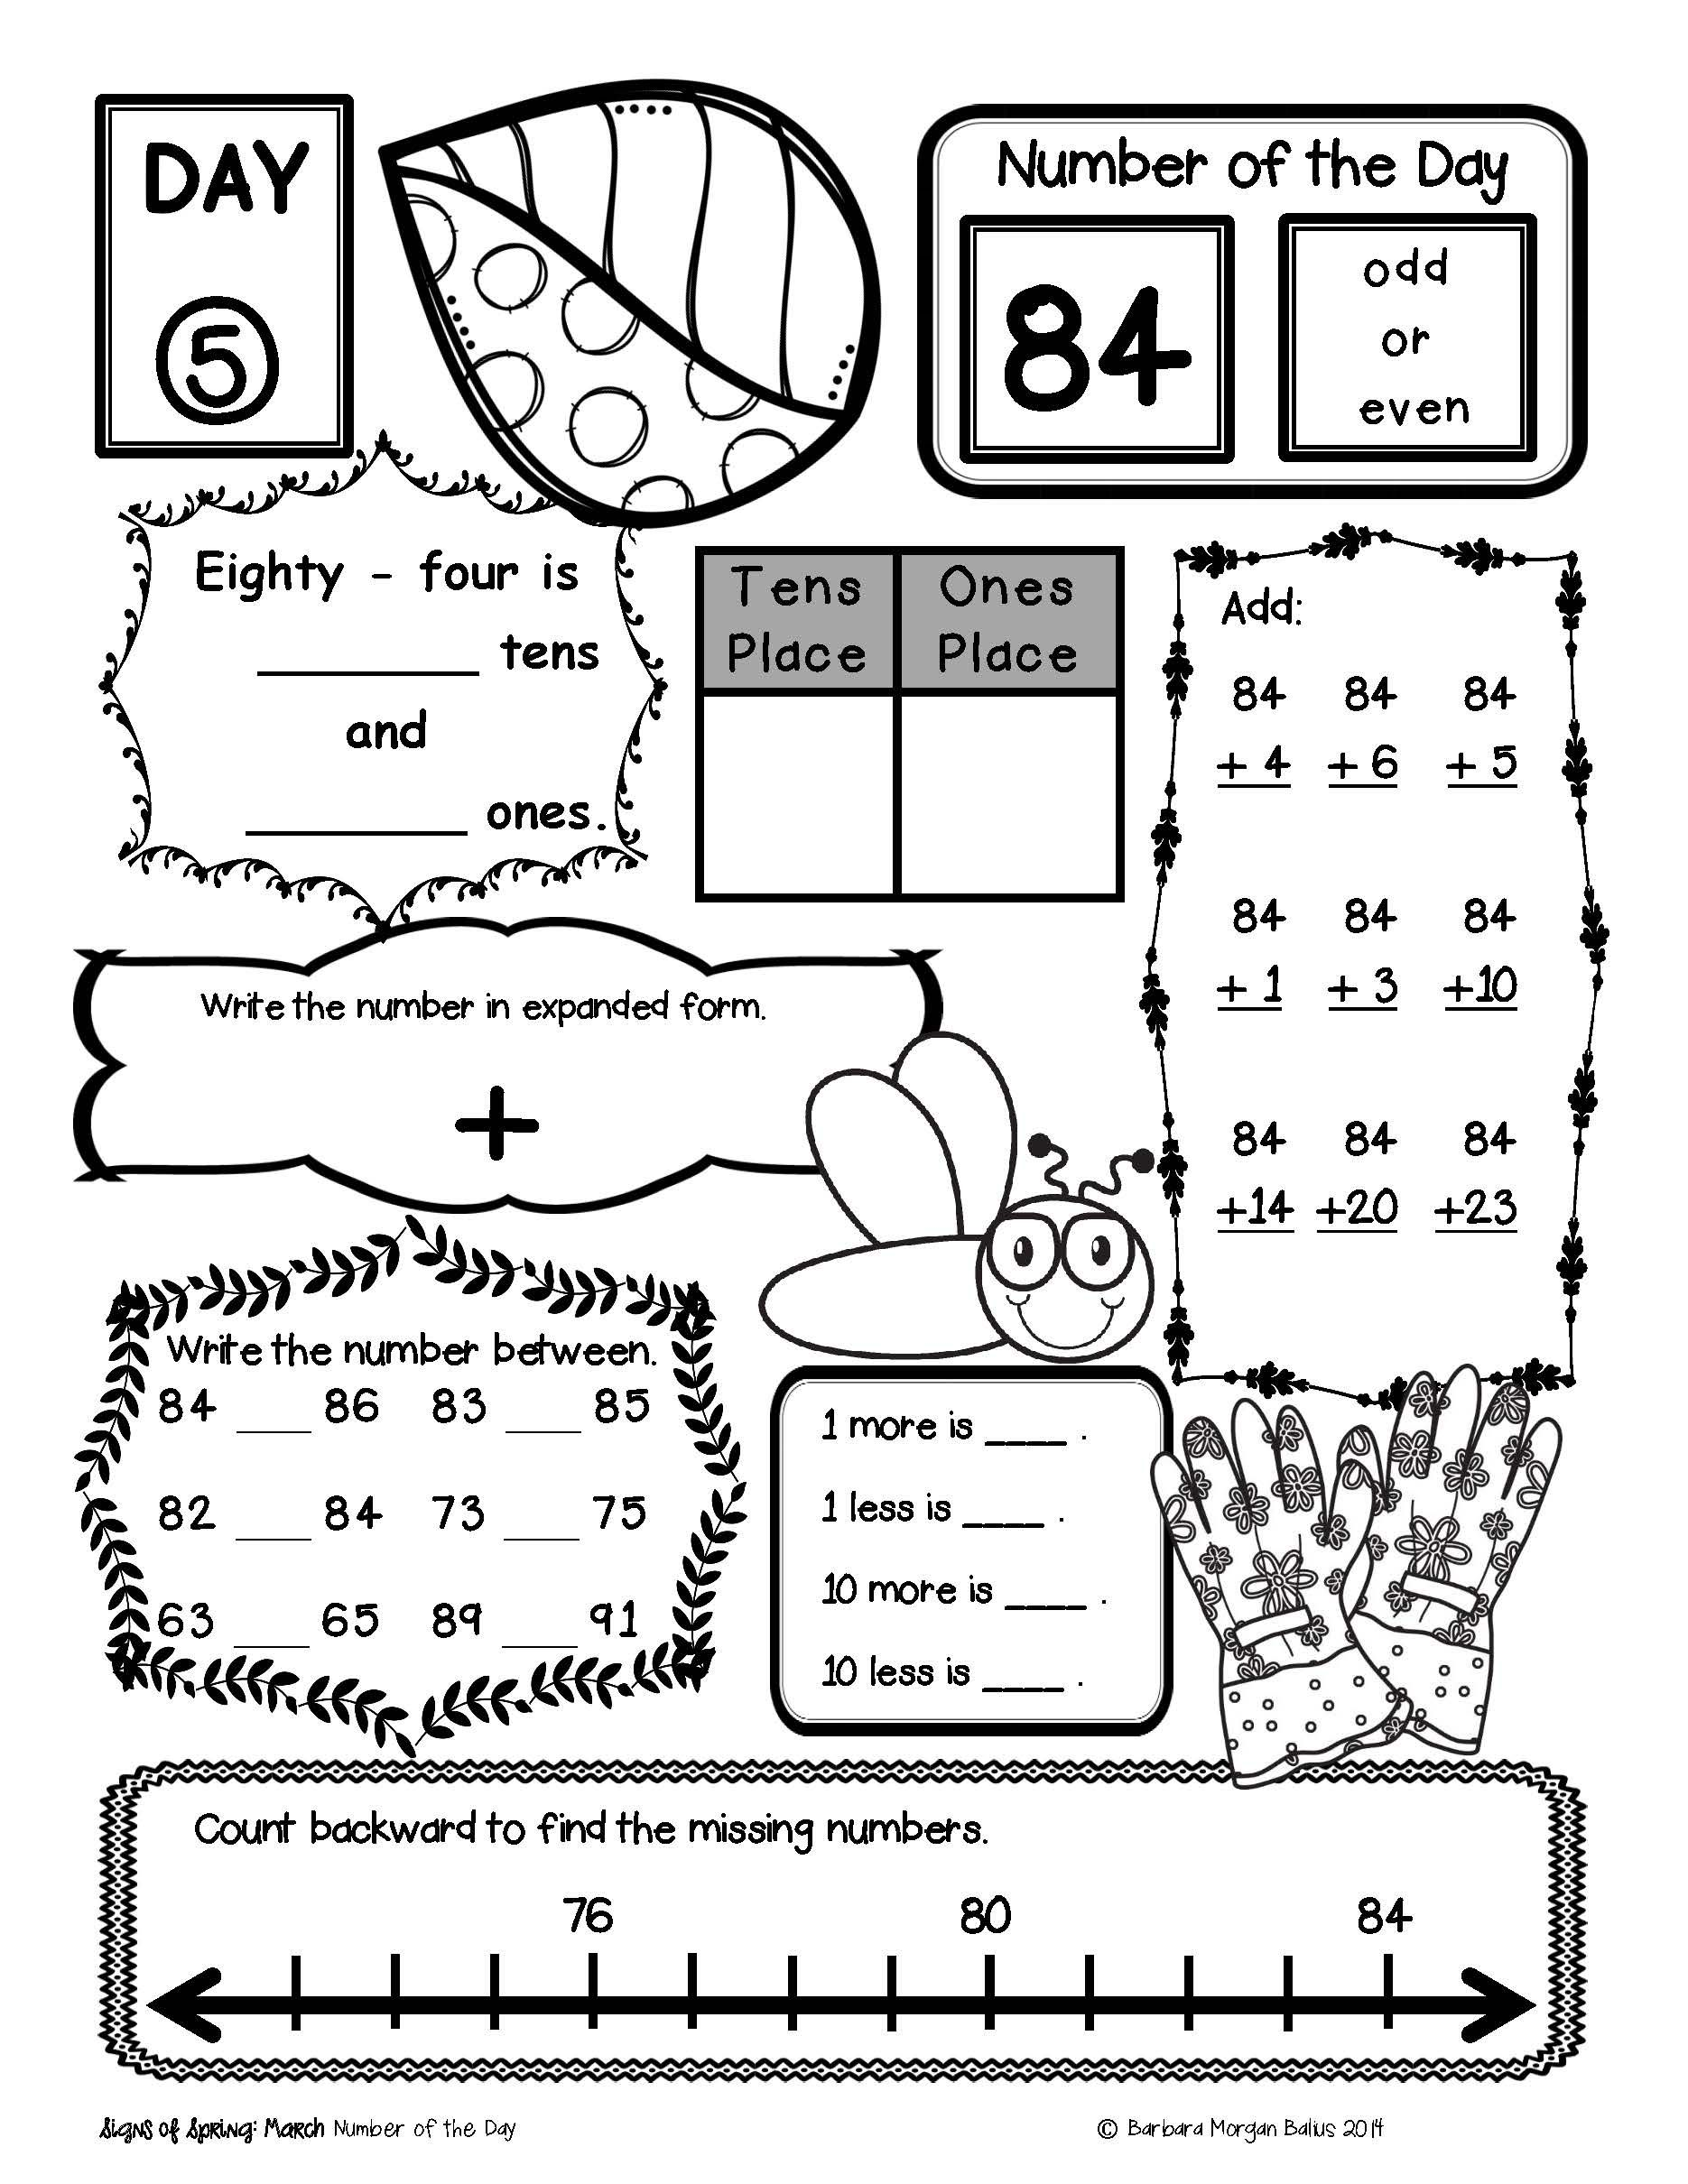 hight resolution of Number of the Day {The Whole Year!} Bundle   2nd grade math worksheets